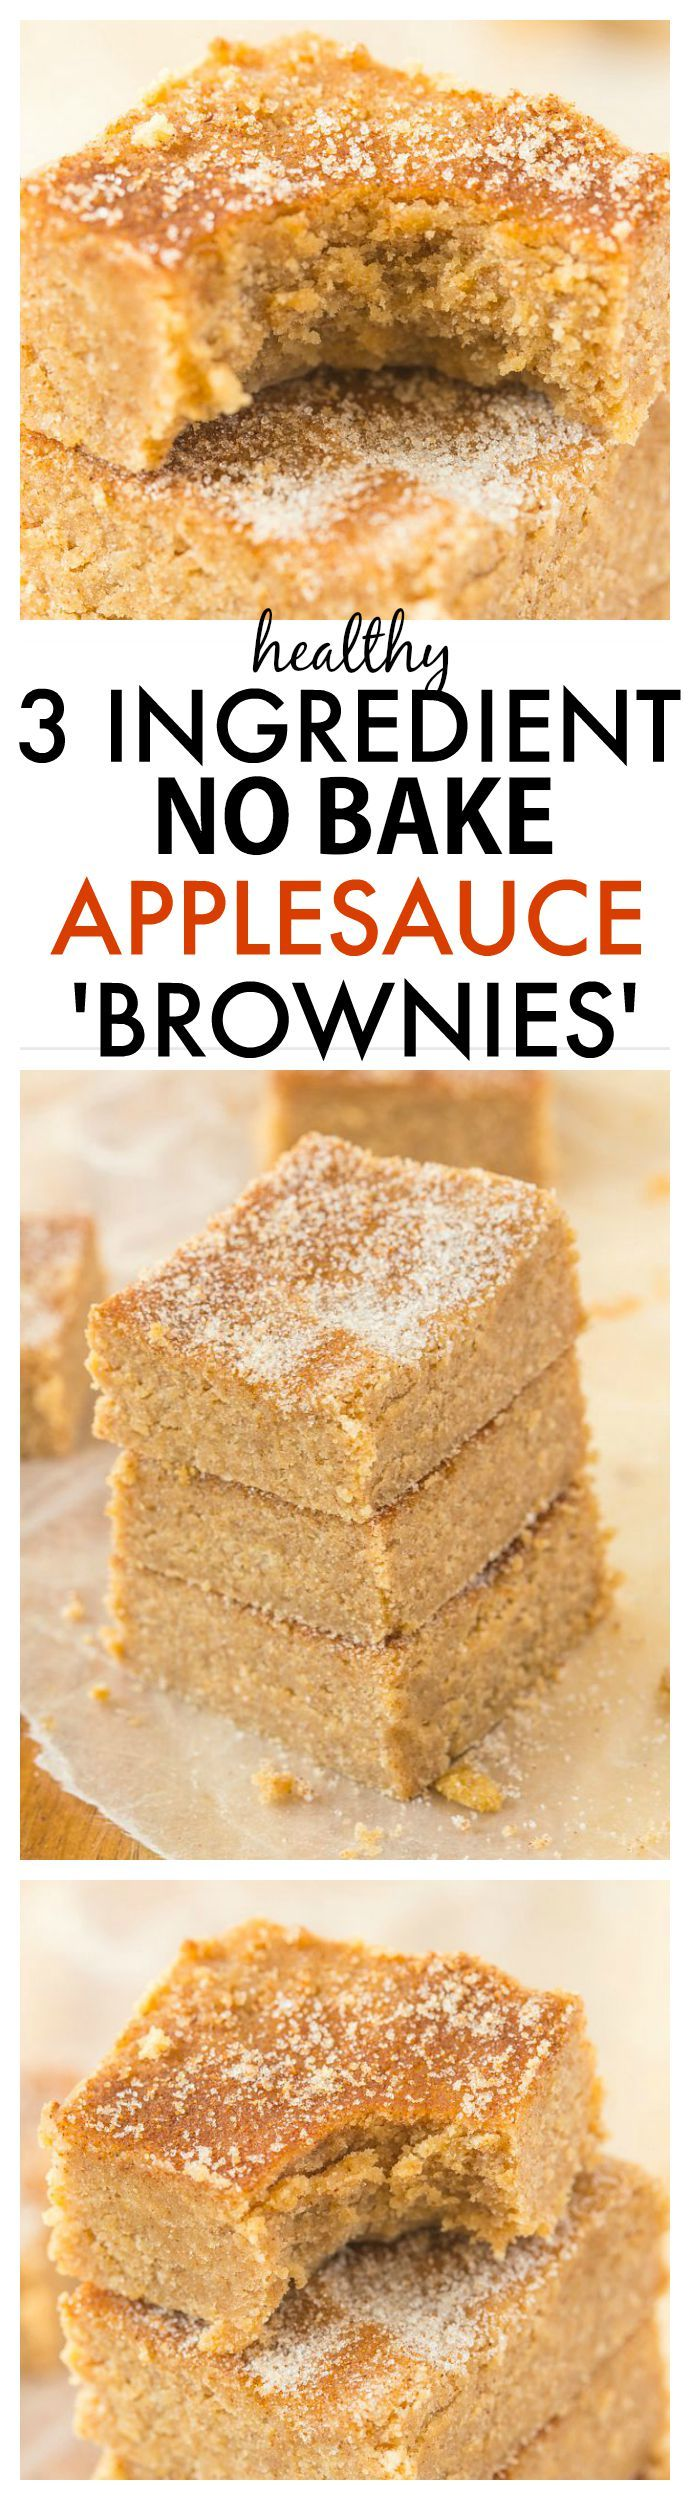 Healthy No Bake Applesauce Brownies with just 3 ingredients - delicious, quick, low in fat and easy!